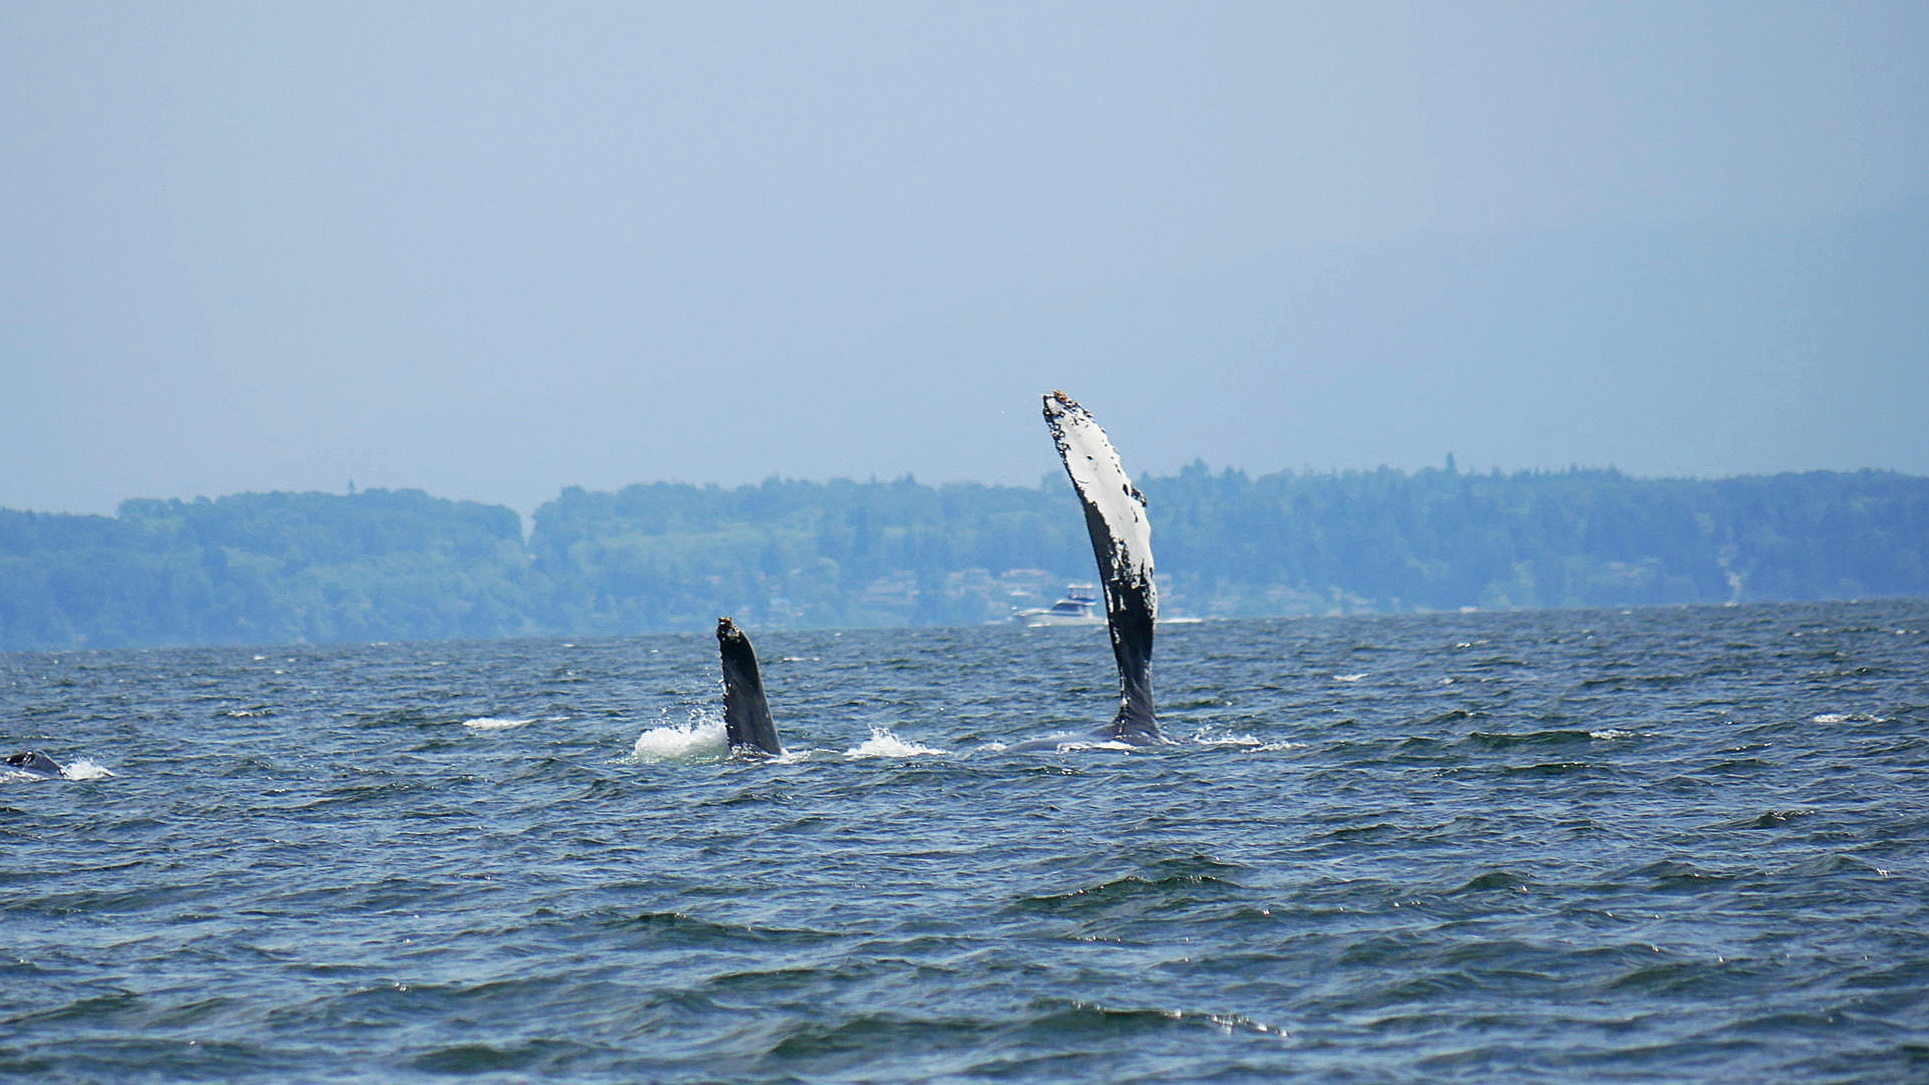 Divot (BCX1057) and another humpback getting ready for a pec slap. Photo by Rebeka Pirker